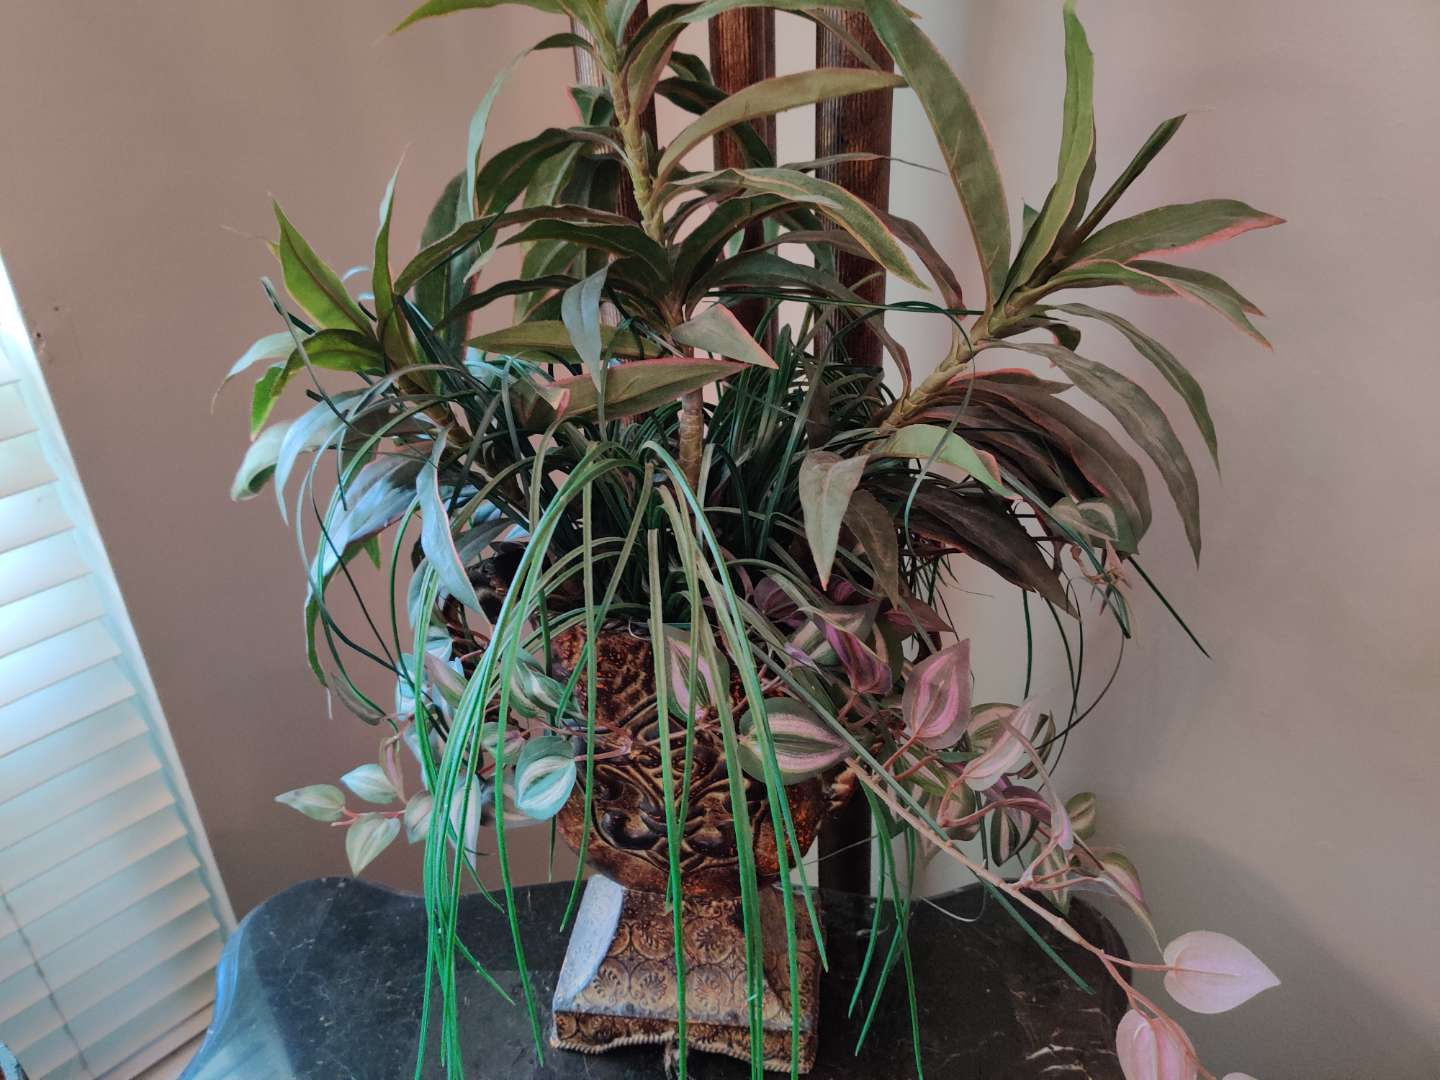 #8 metal urn style vase with greenery 28 in tall overall